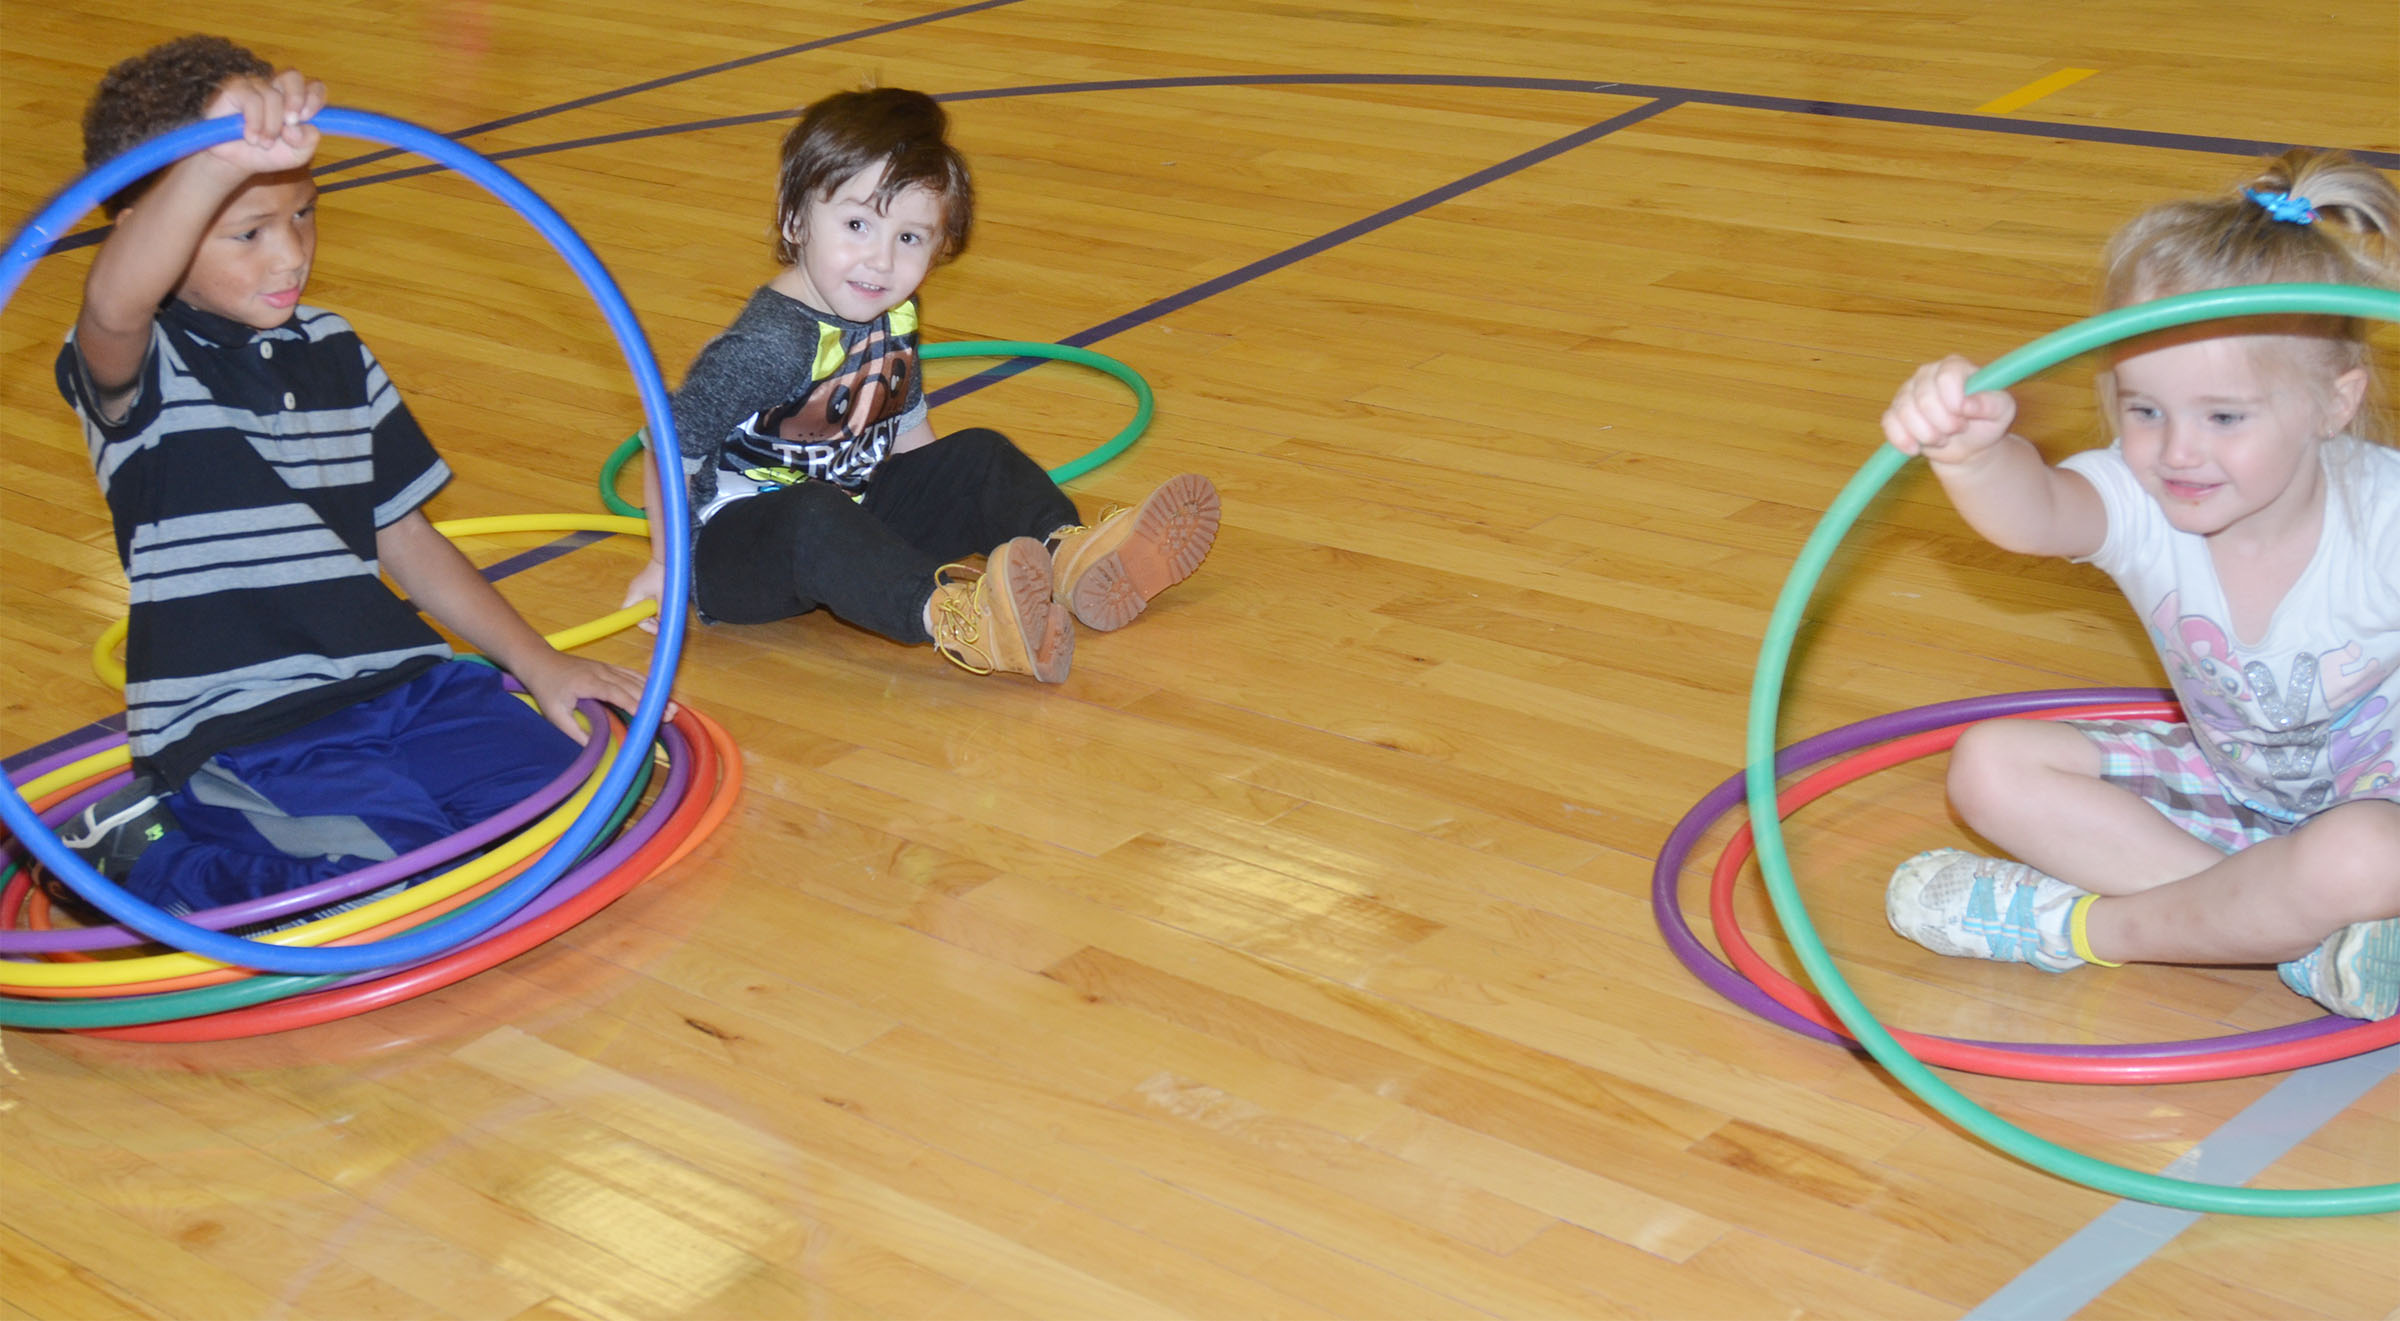 From left, CES preschool students Jamerius Miller, Noelan McMahan and Trinity Dye play with hula hoops.